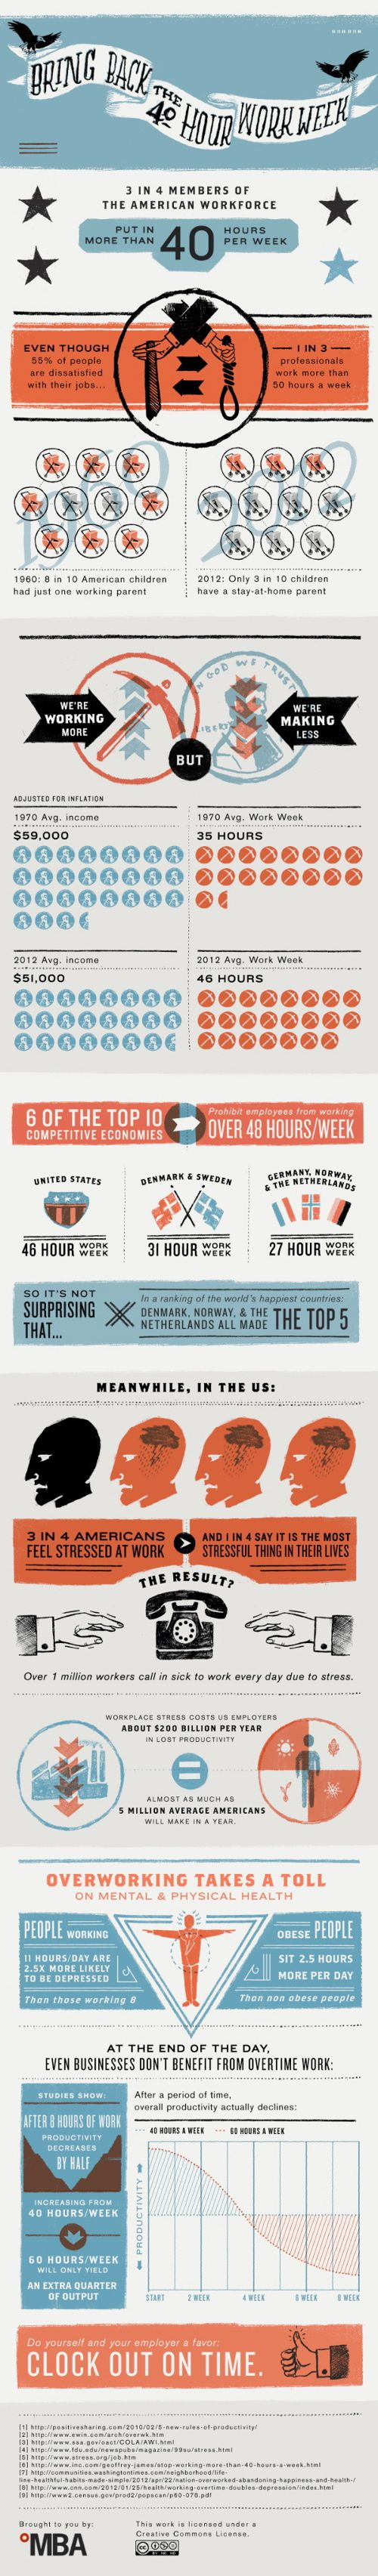 Bring back the 40 Hour Work Week!  Infographic: 3 in 4 Americans work more than 40 hours a week   Articles   Main